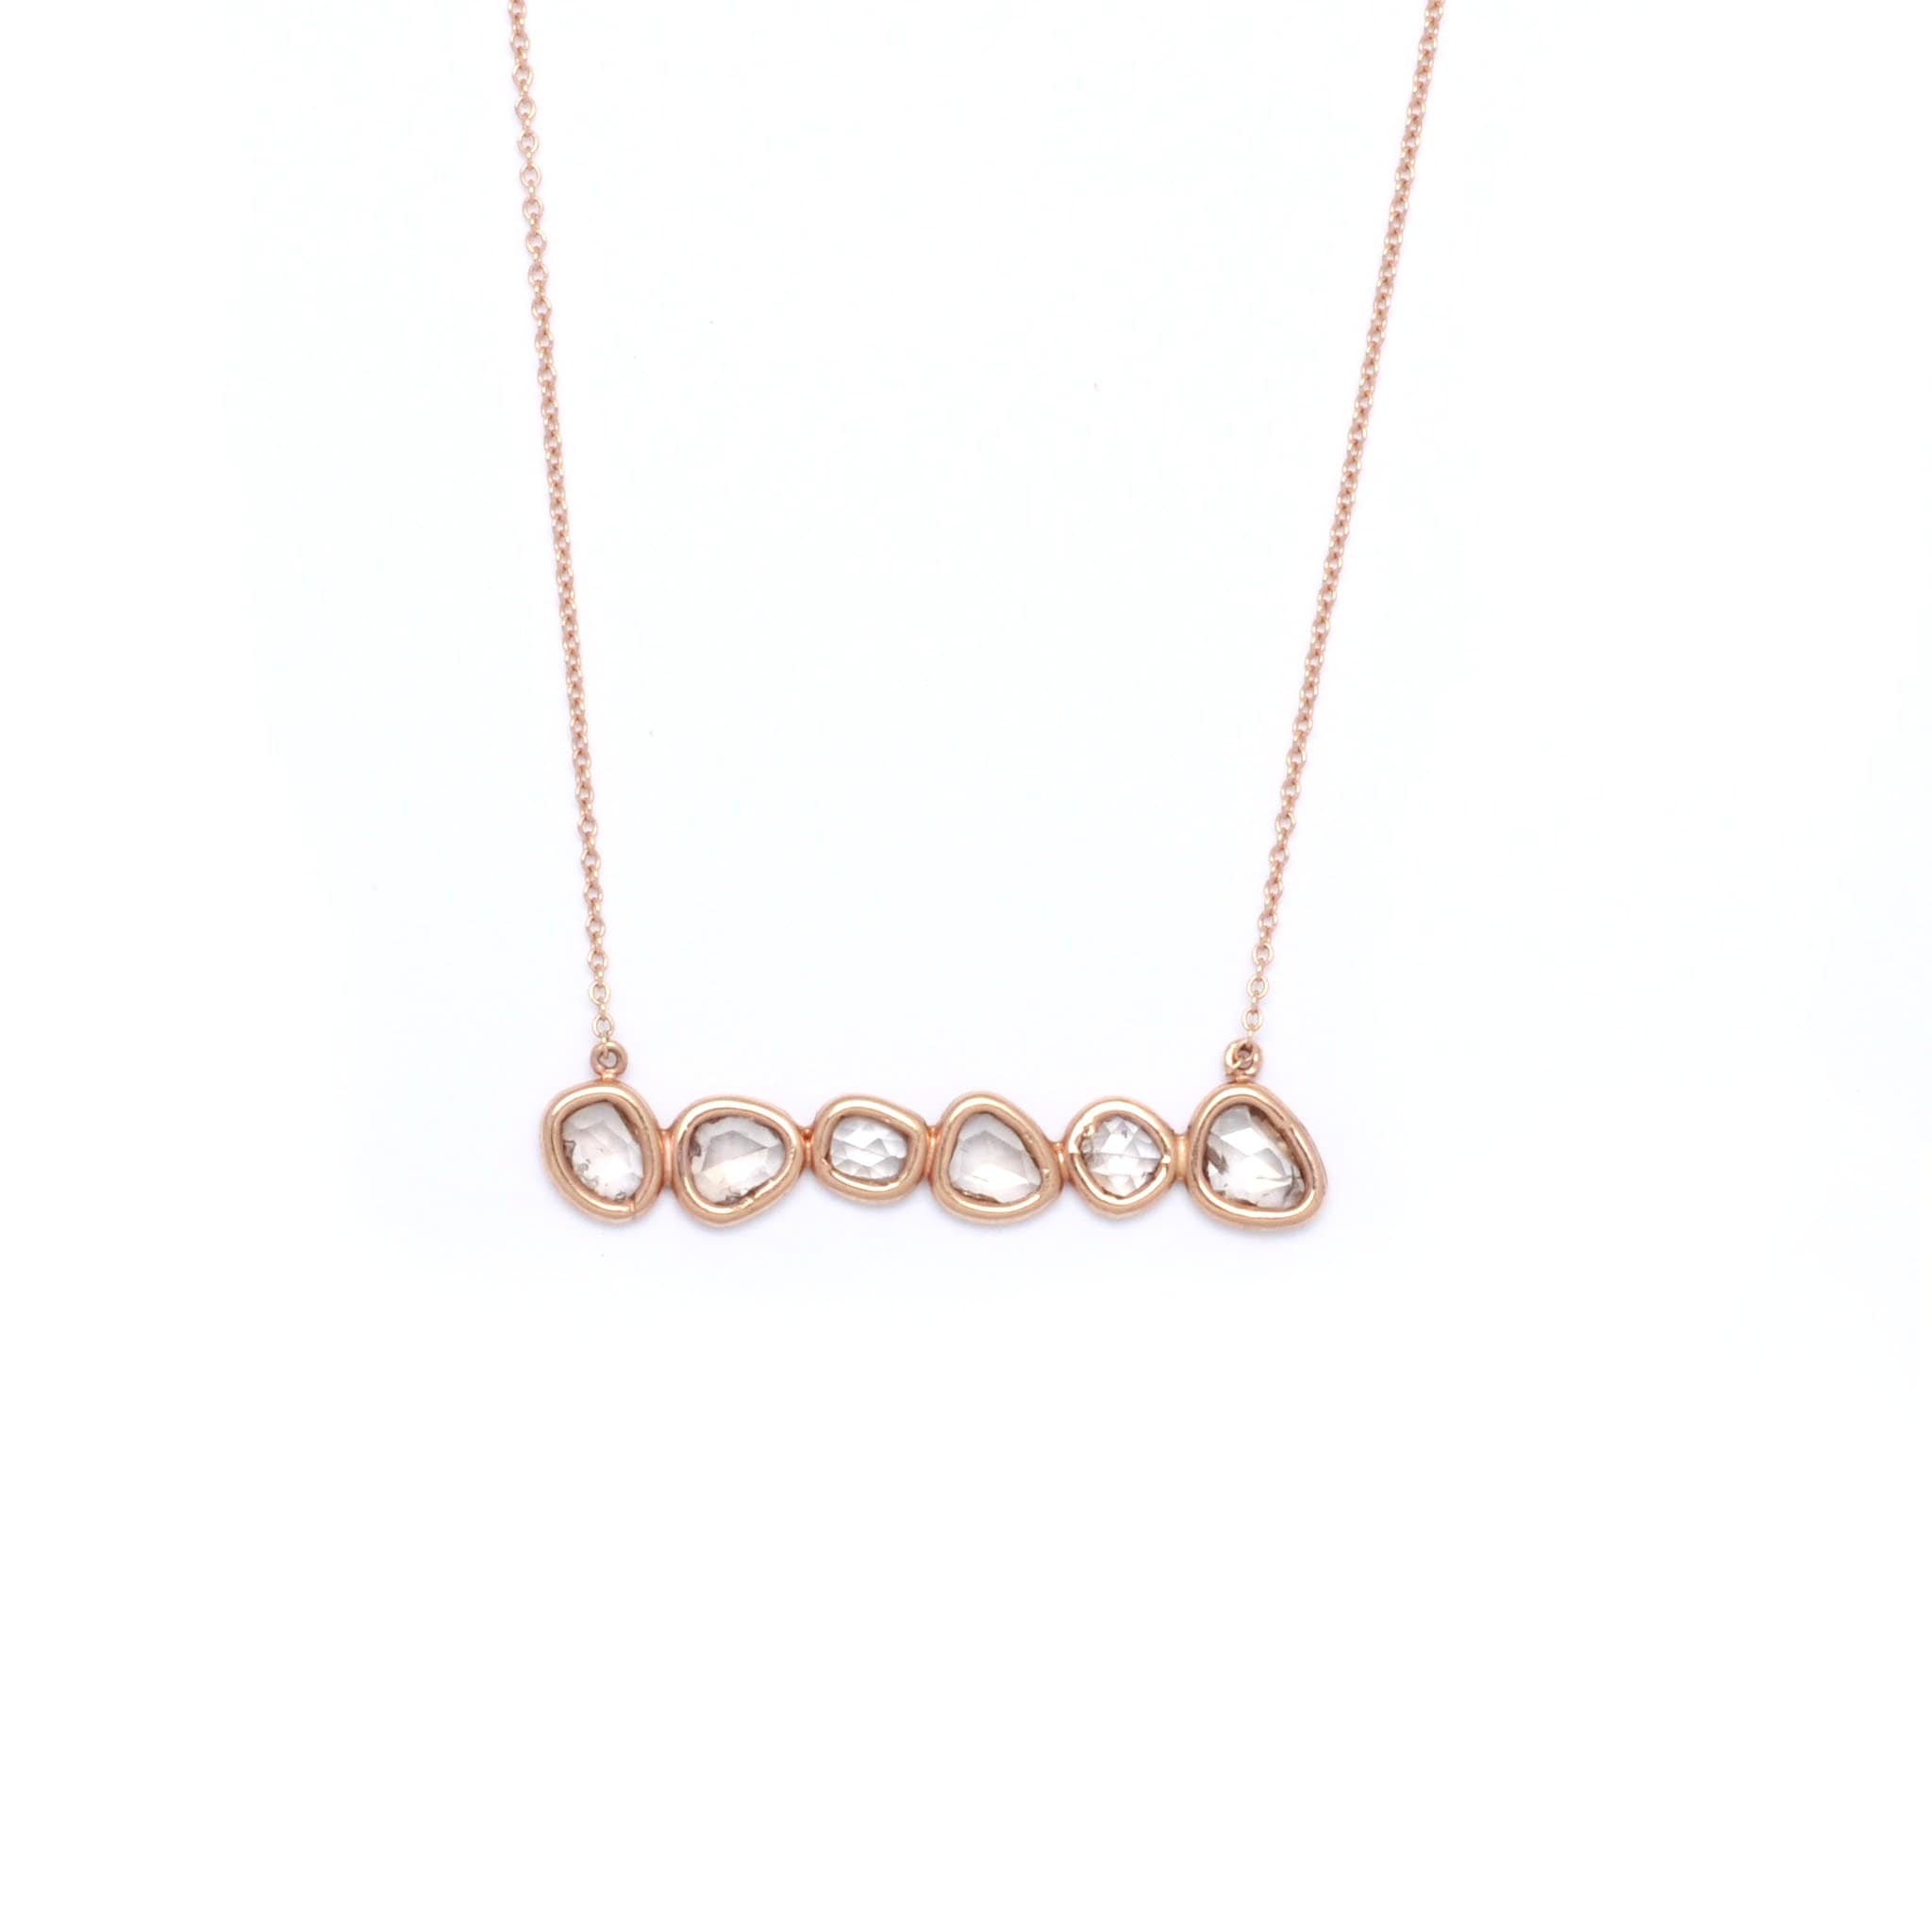 necklace mini c bar necklaces nordstrom gold women s